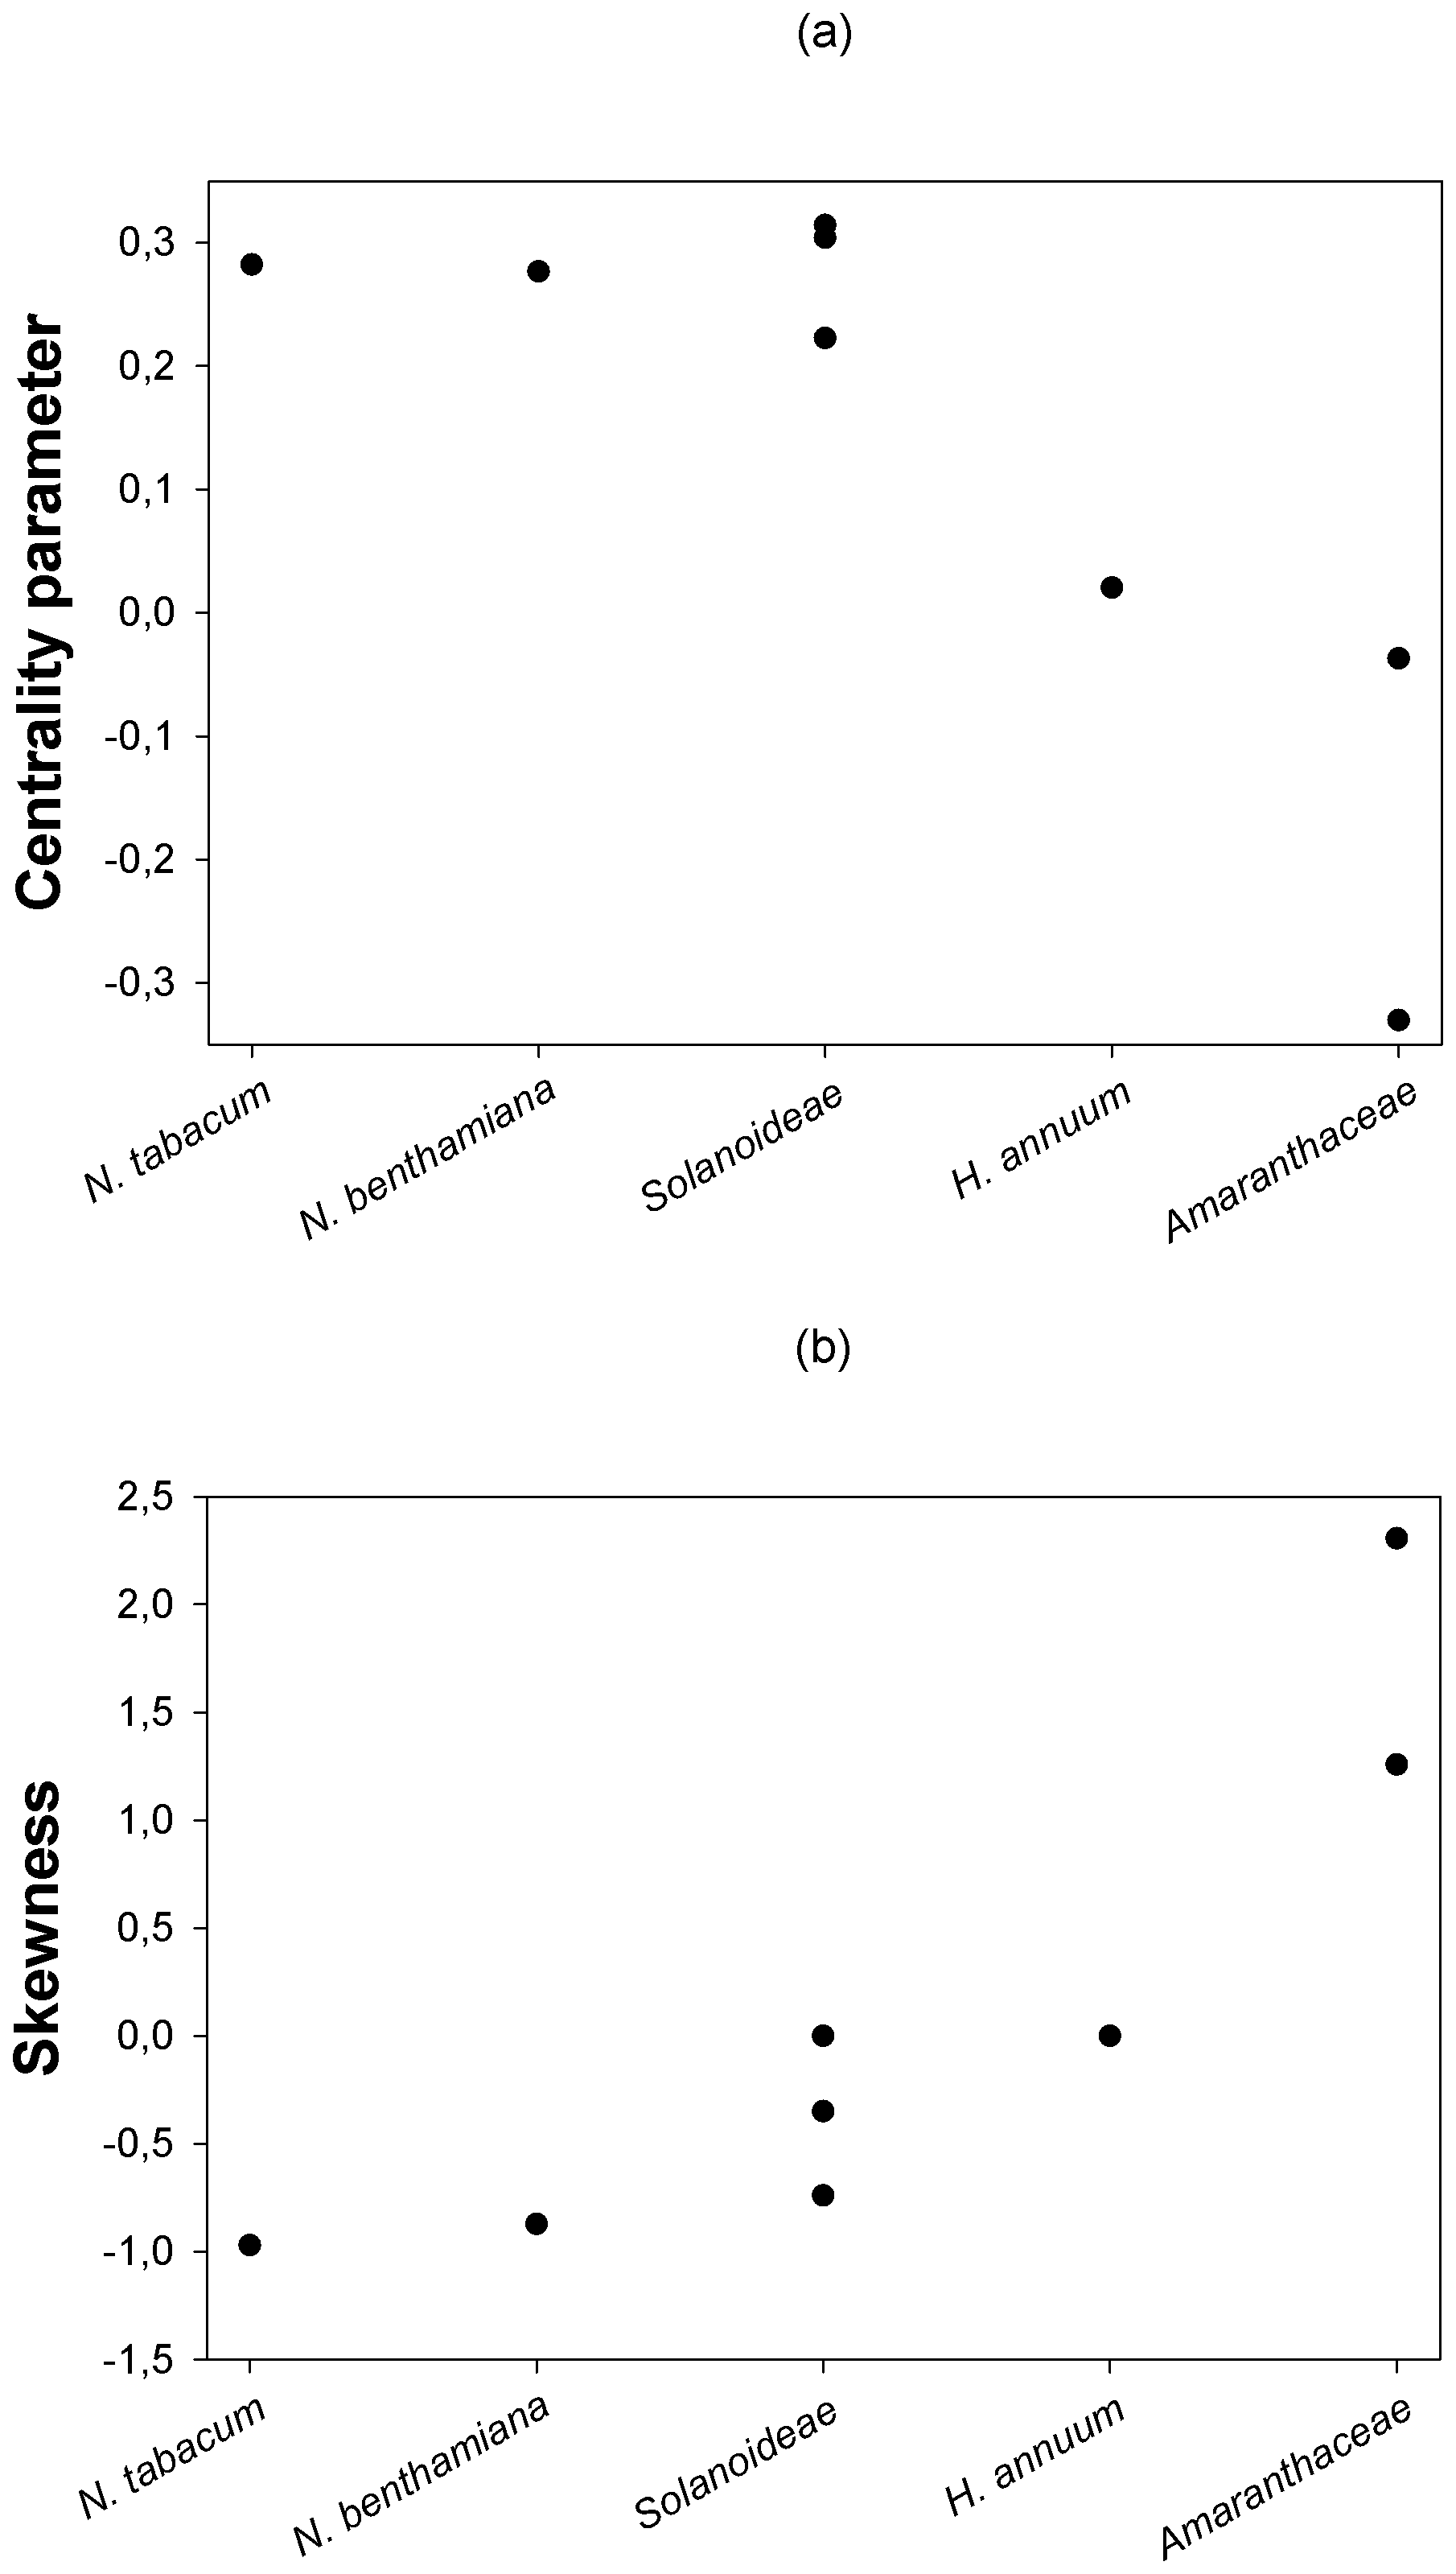 Changes in the centrality and shape parameters of the DMFE with increasing genetic distance among hosts.